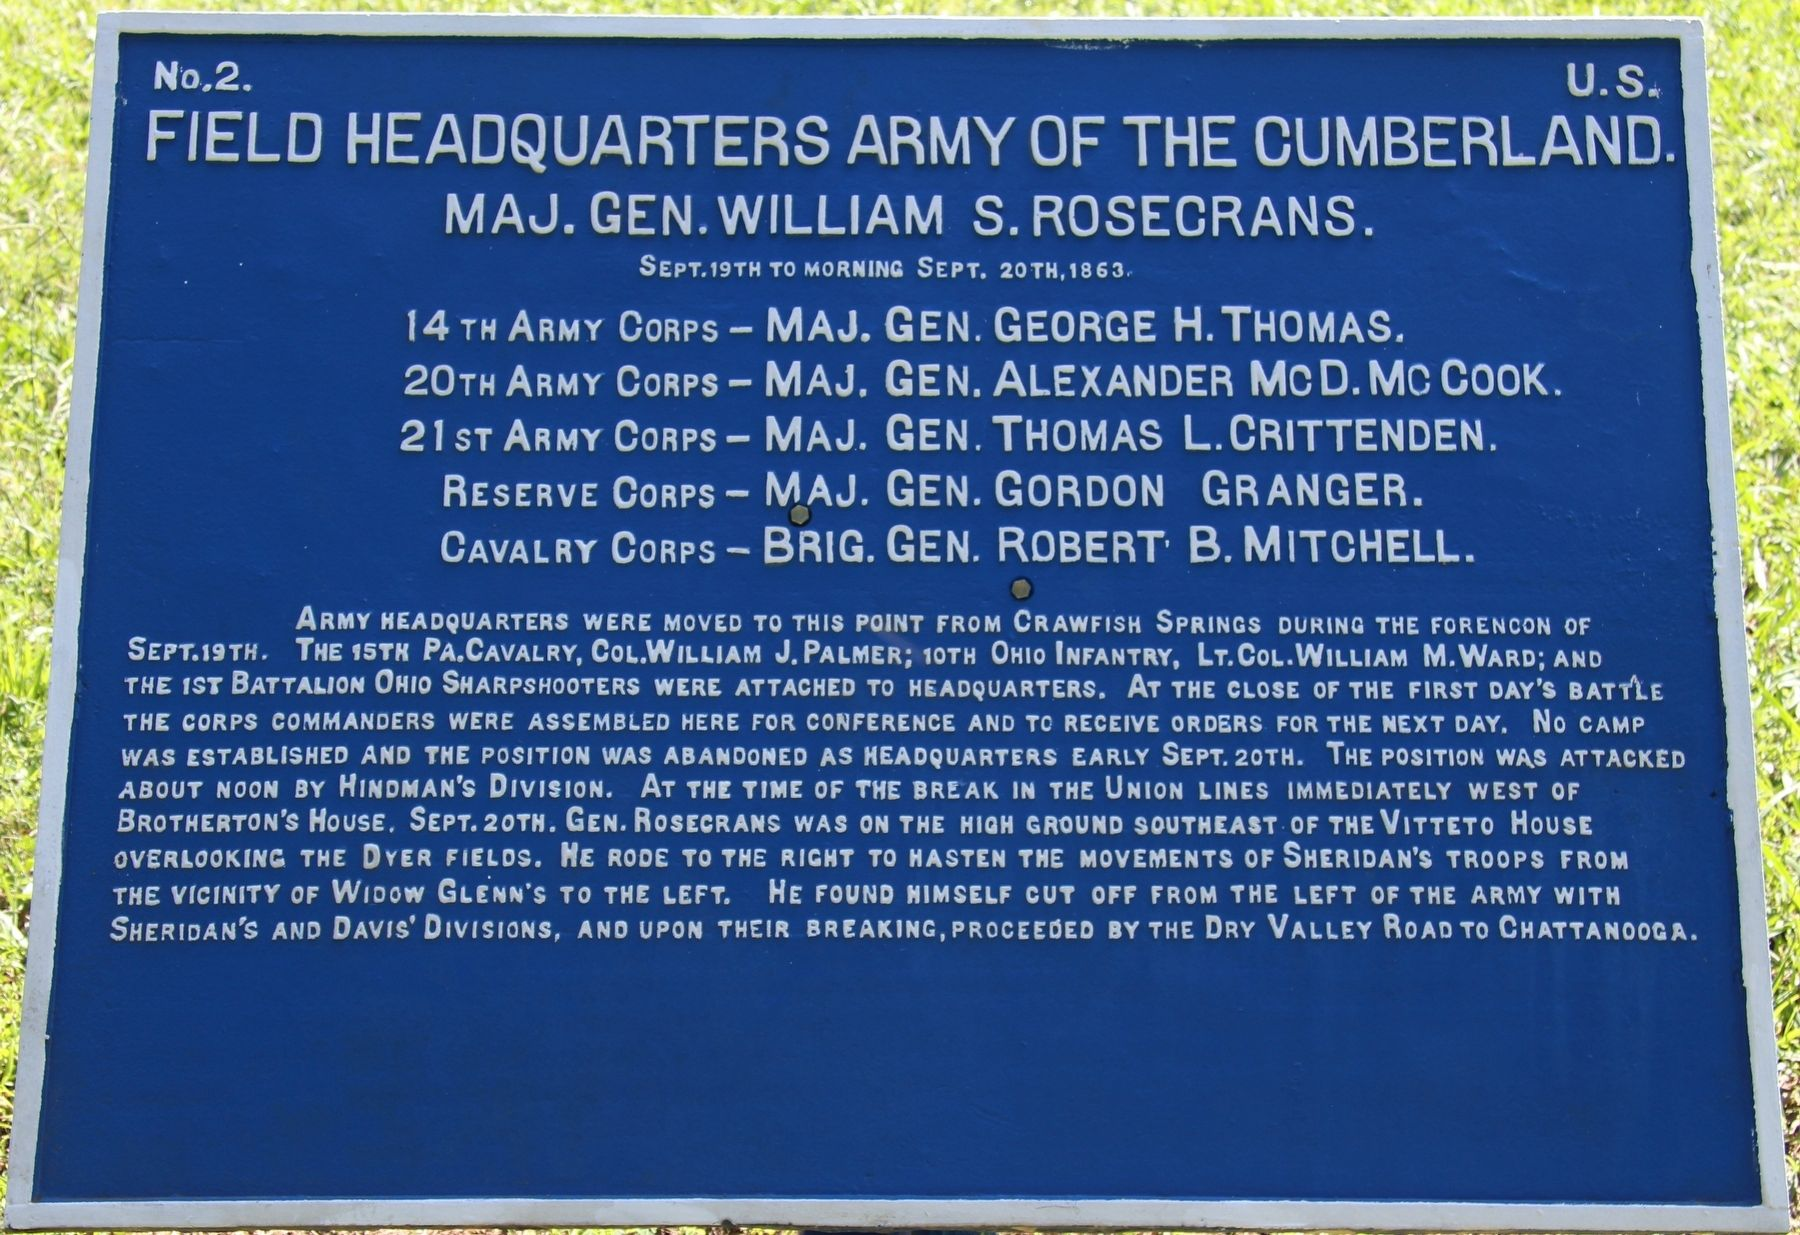 Field Headquarters Army of the Cumberland. Marker image. Click for full size.